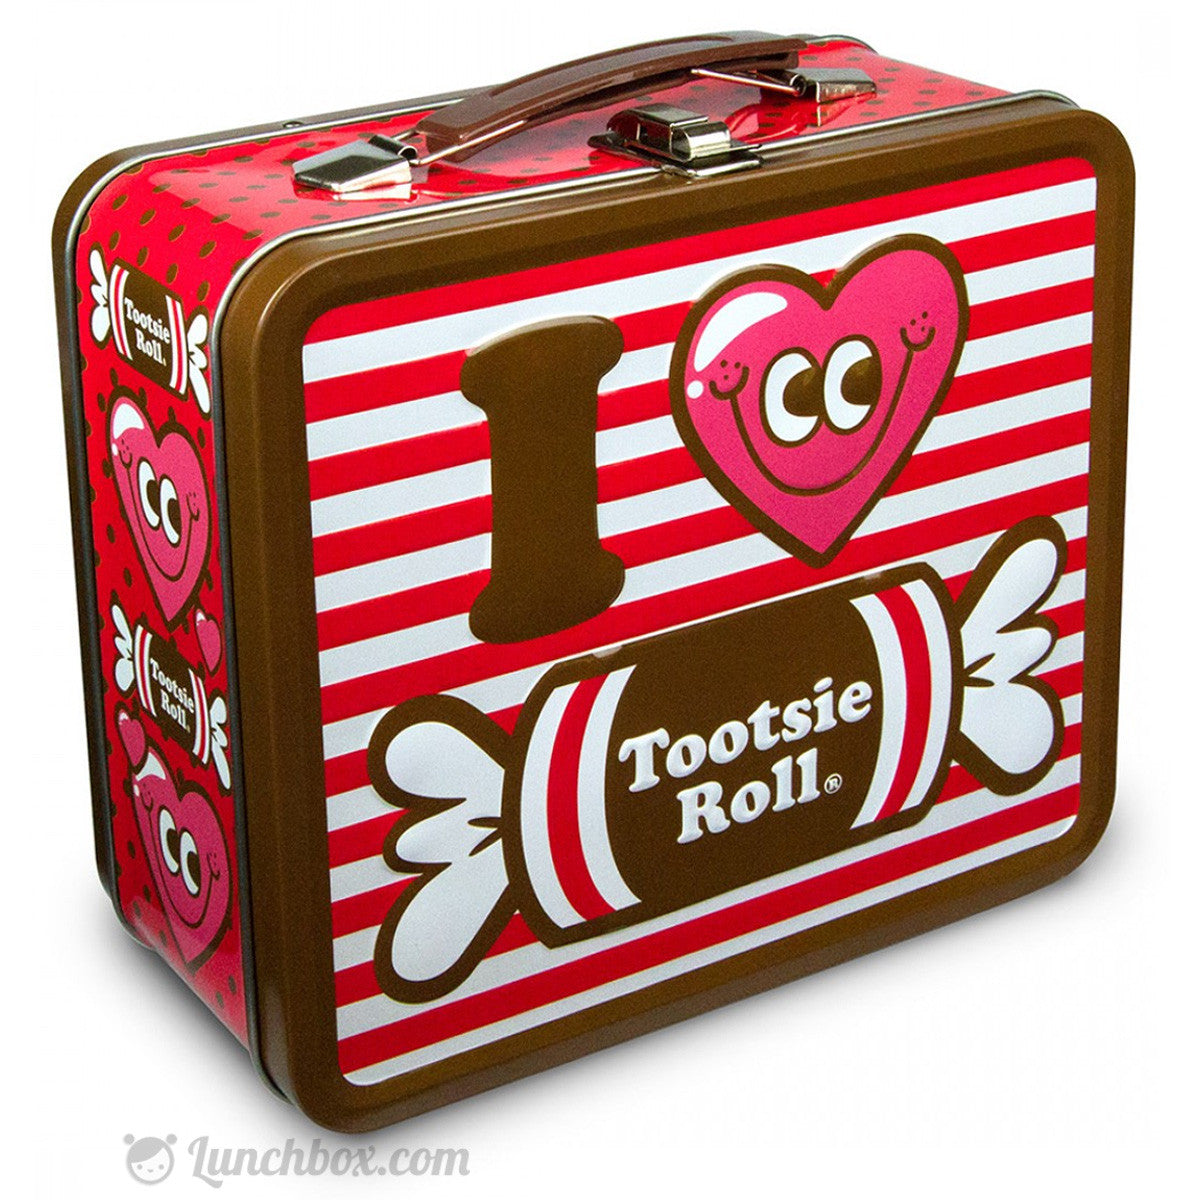 I Love Tootsie Roll Lunch Box